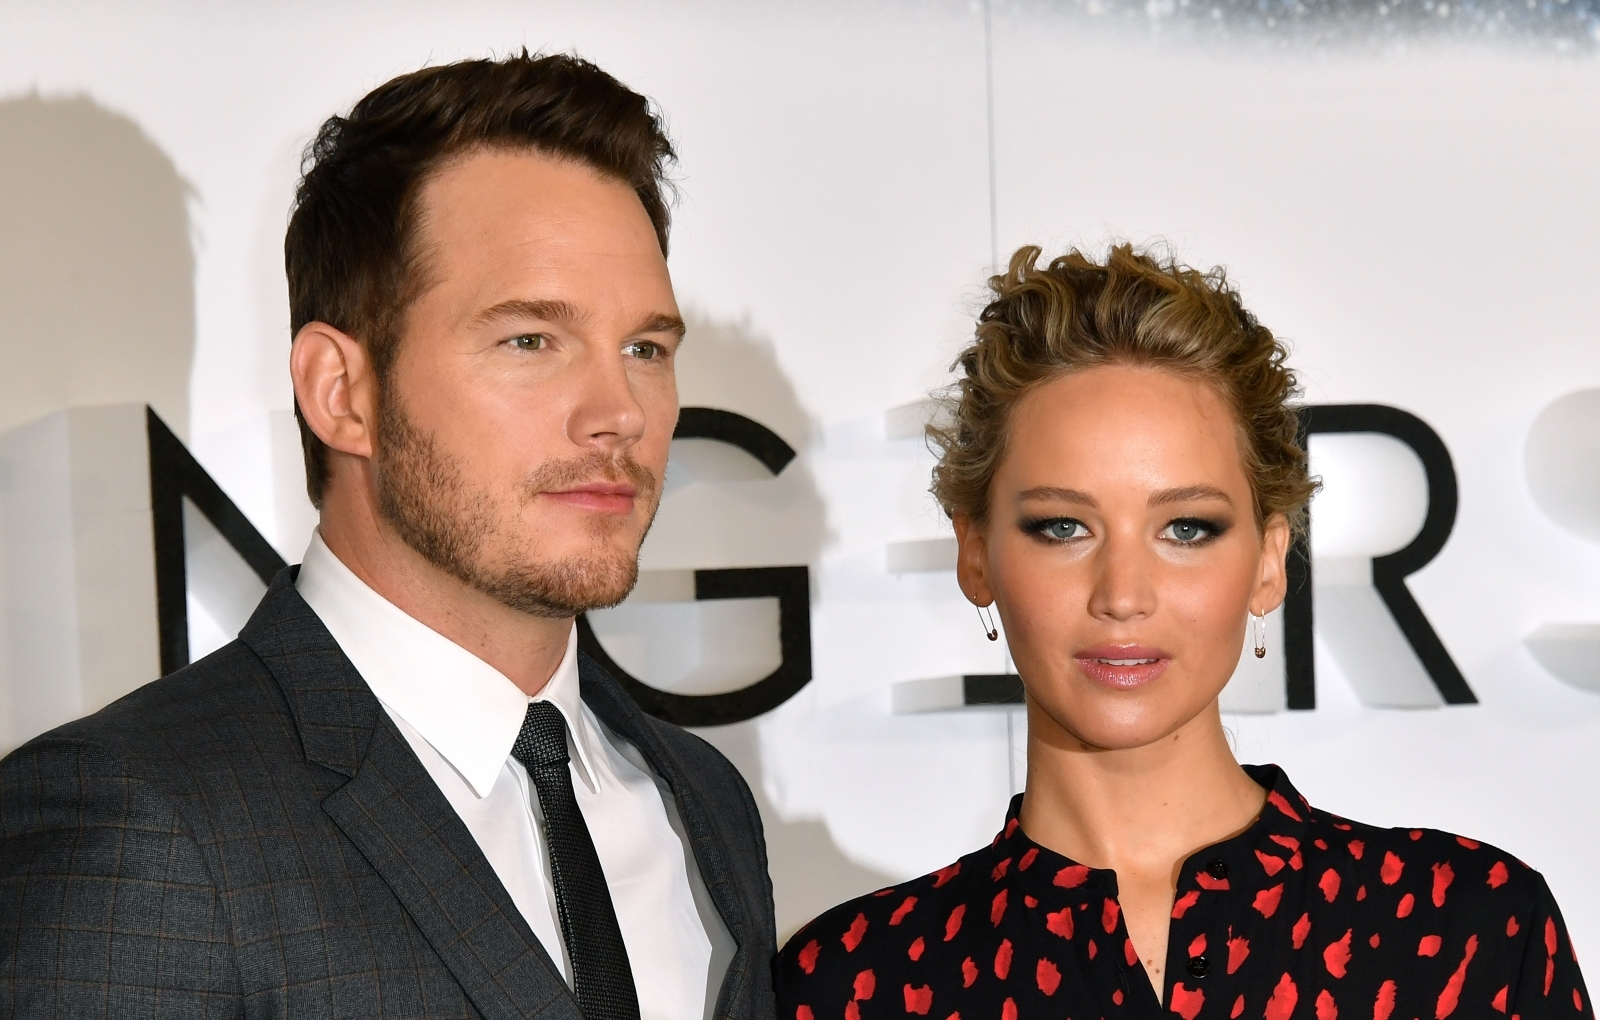 Anna Faris and Chris Pratt: family vs career